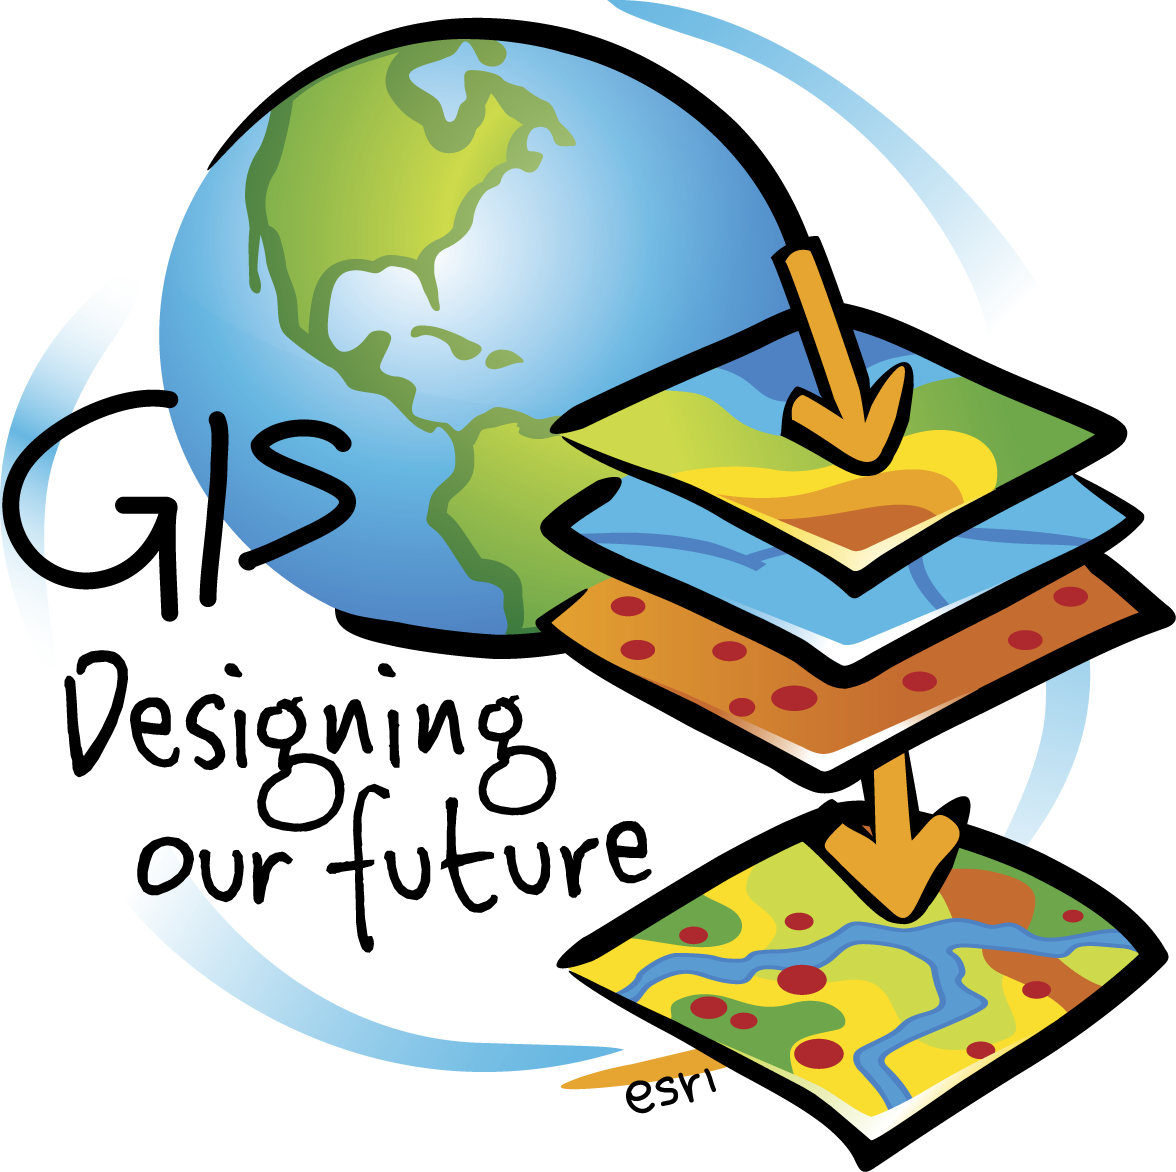 Maps gis free on. Geography clipart archaeologist tool